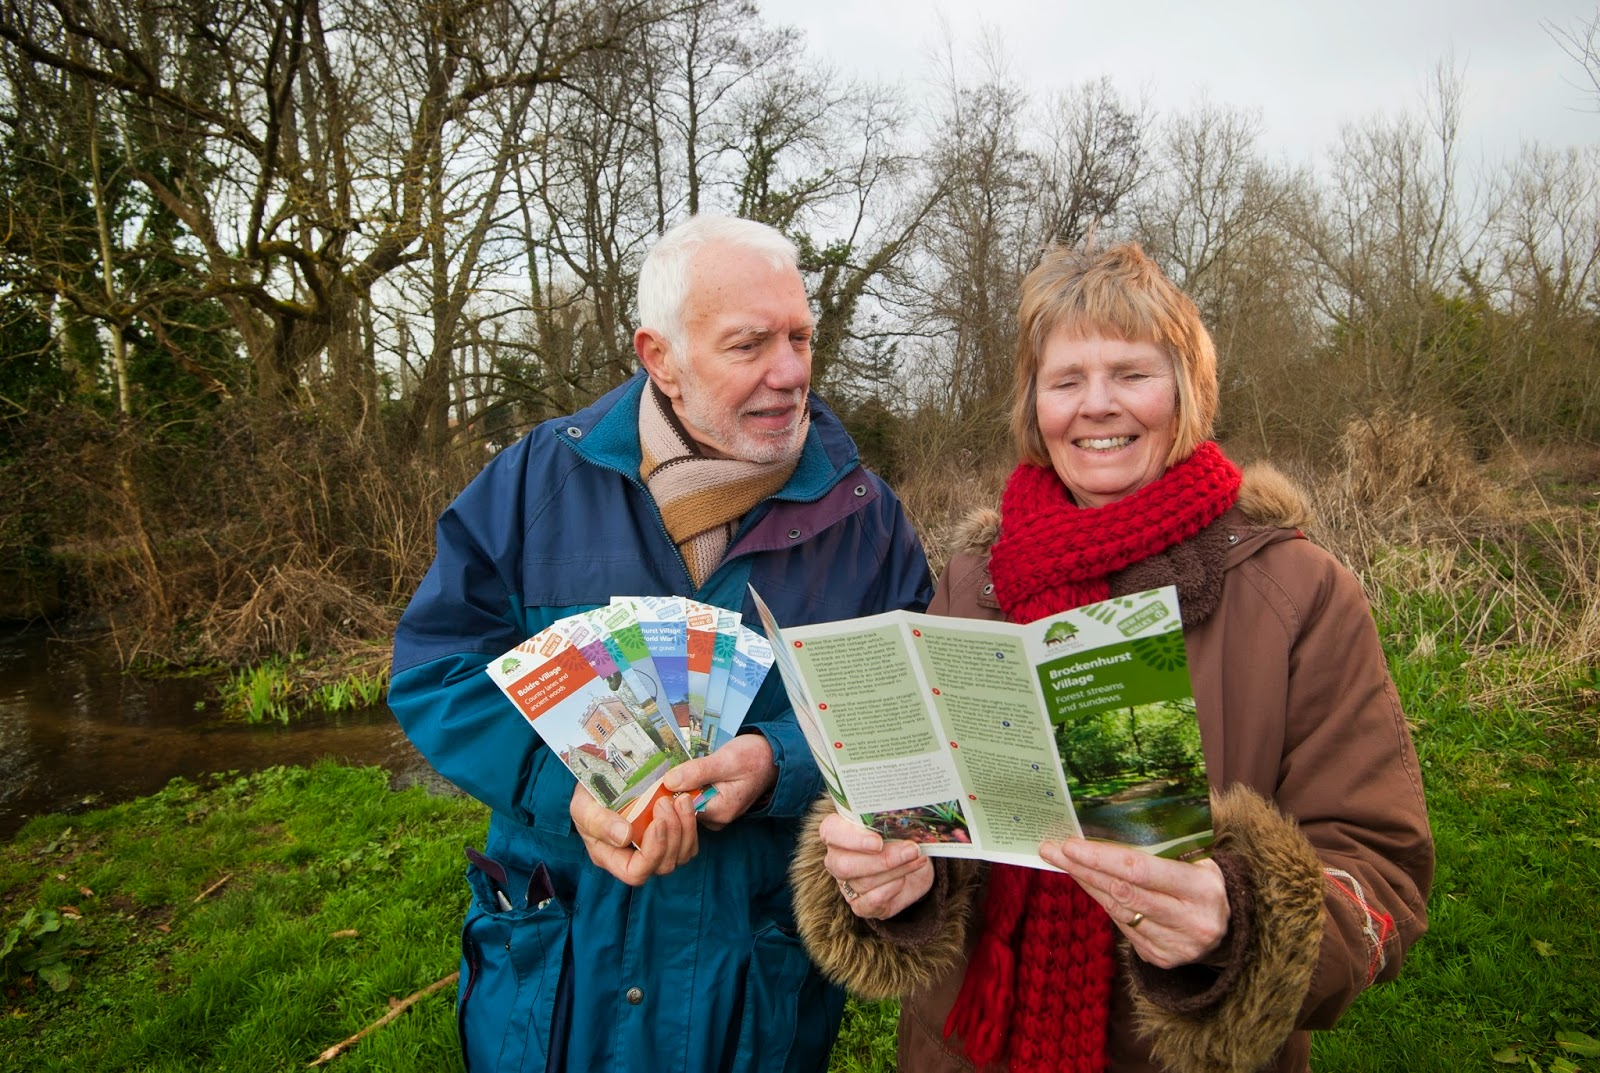 New Forest Walks Leaflets being read by two keen walkers